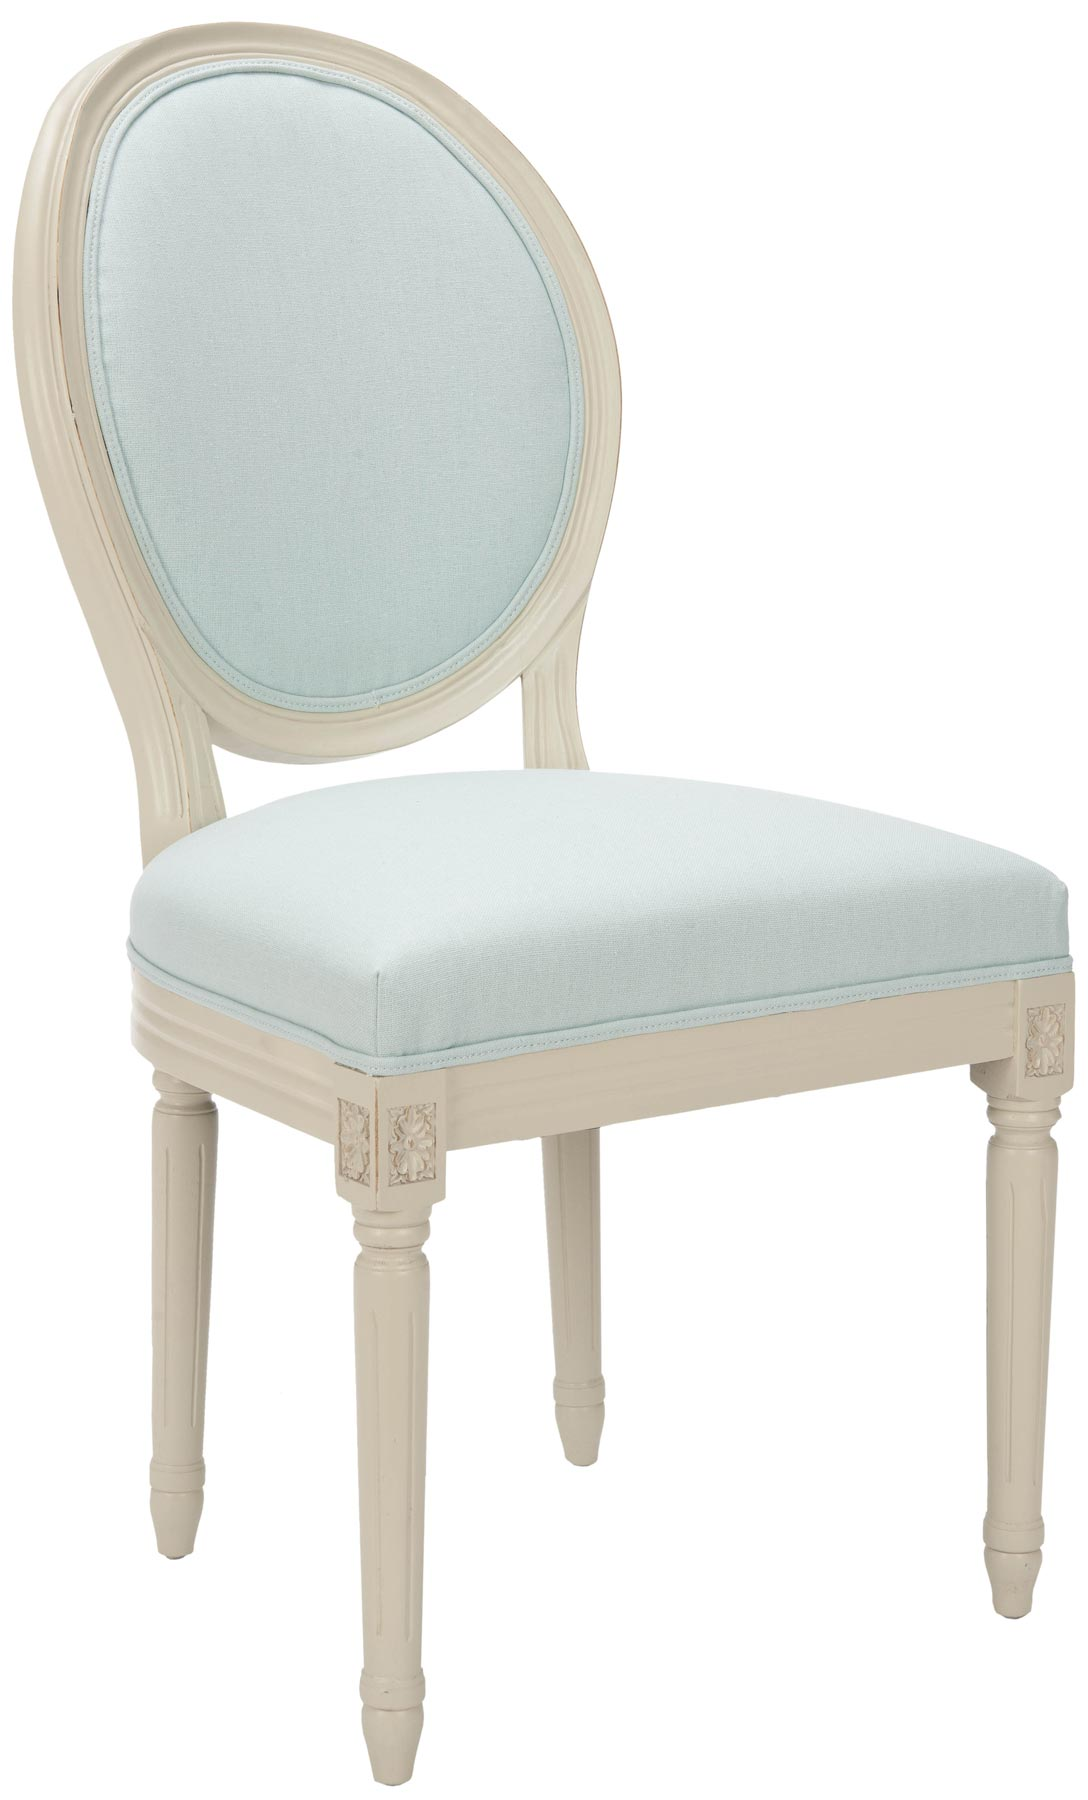 paris side chair personalized toddler chairs safavieh mcr4517l oval set of two